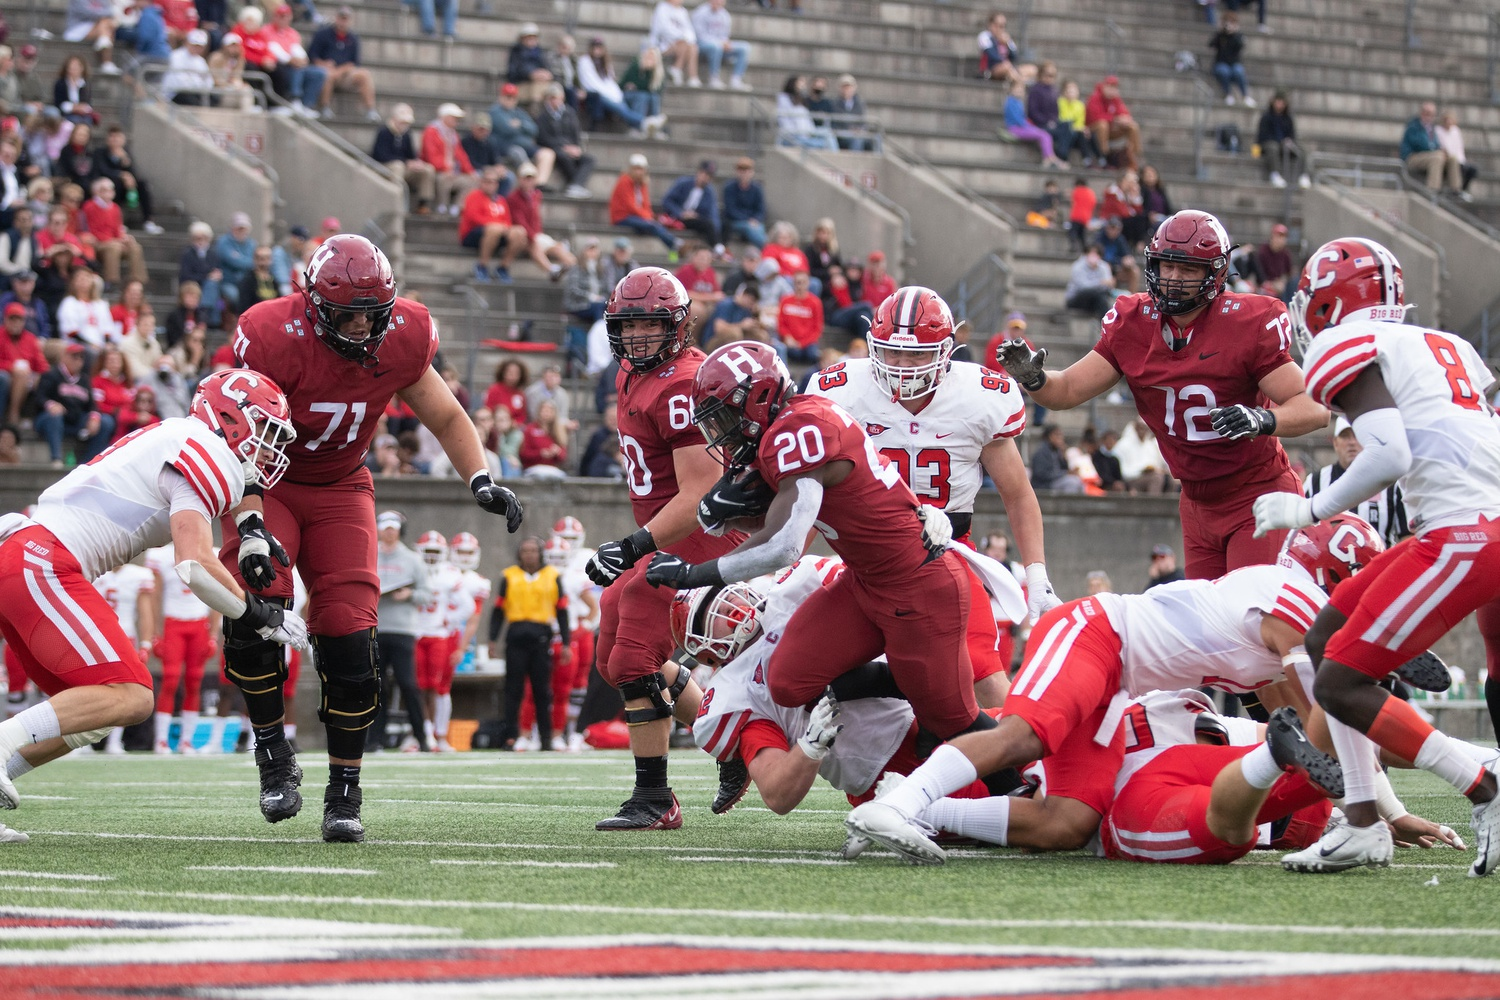 Junior running back Aaron Shampklin bursts through a line of Cornell defenders as he sets his sights on the goal line.